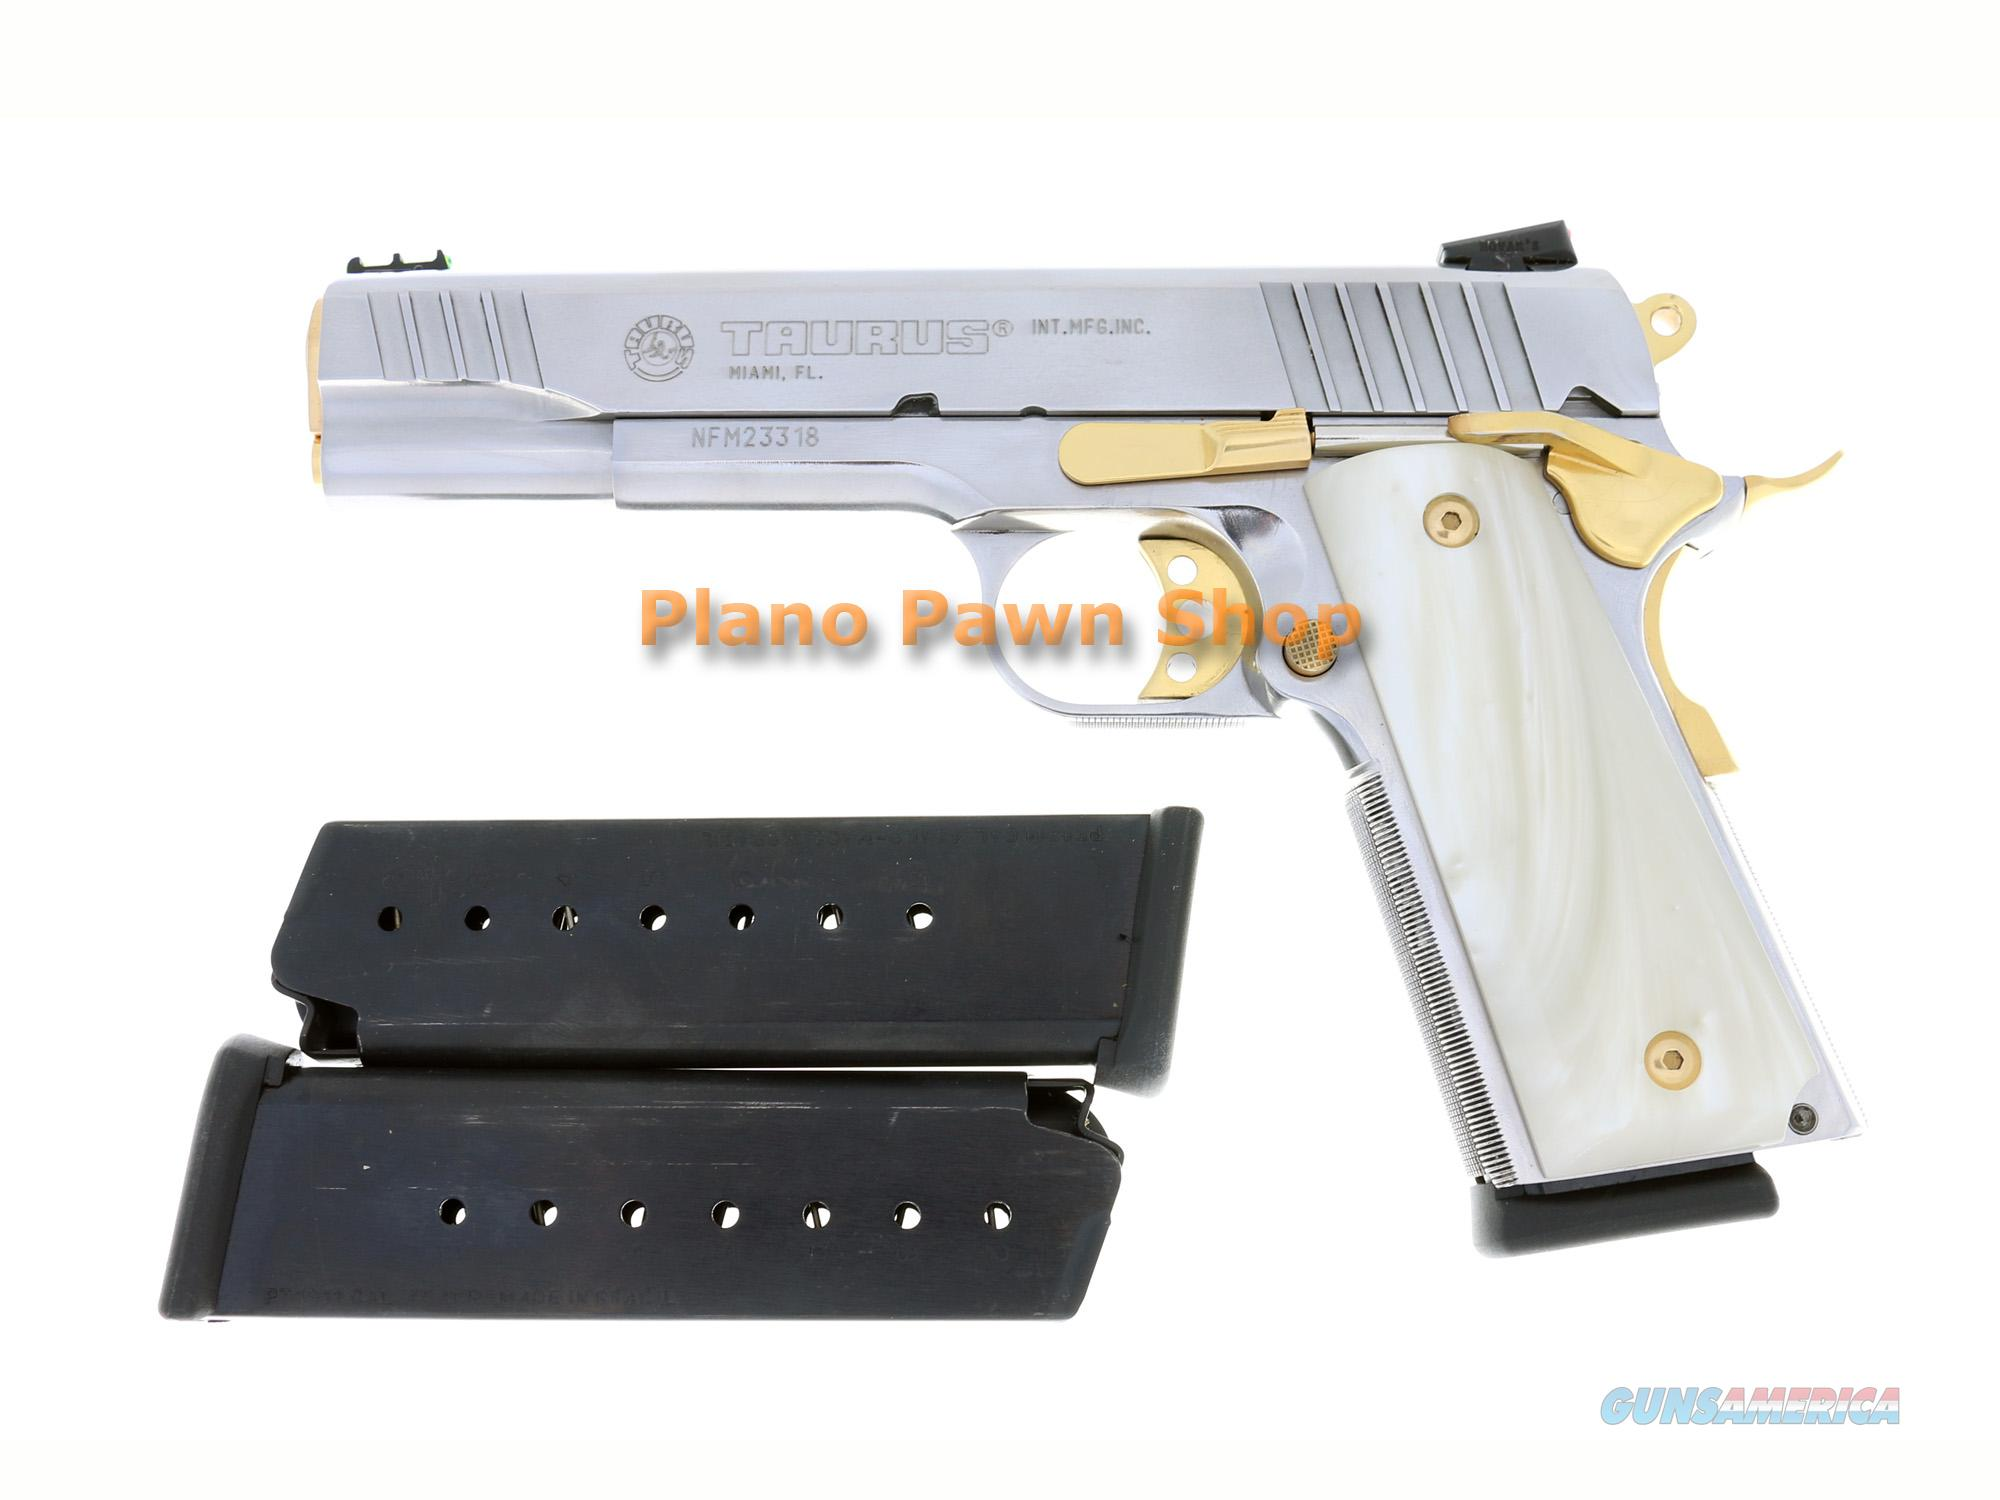 Taurus Model PT1911 .45ACP Stainless with Gold Accents & 3 Mags  Guns > Pistols > Taurus Pistols/Revolvers > Pistols > Steel Frame